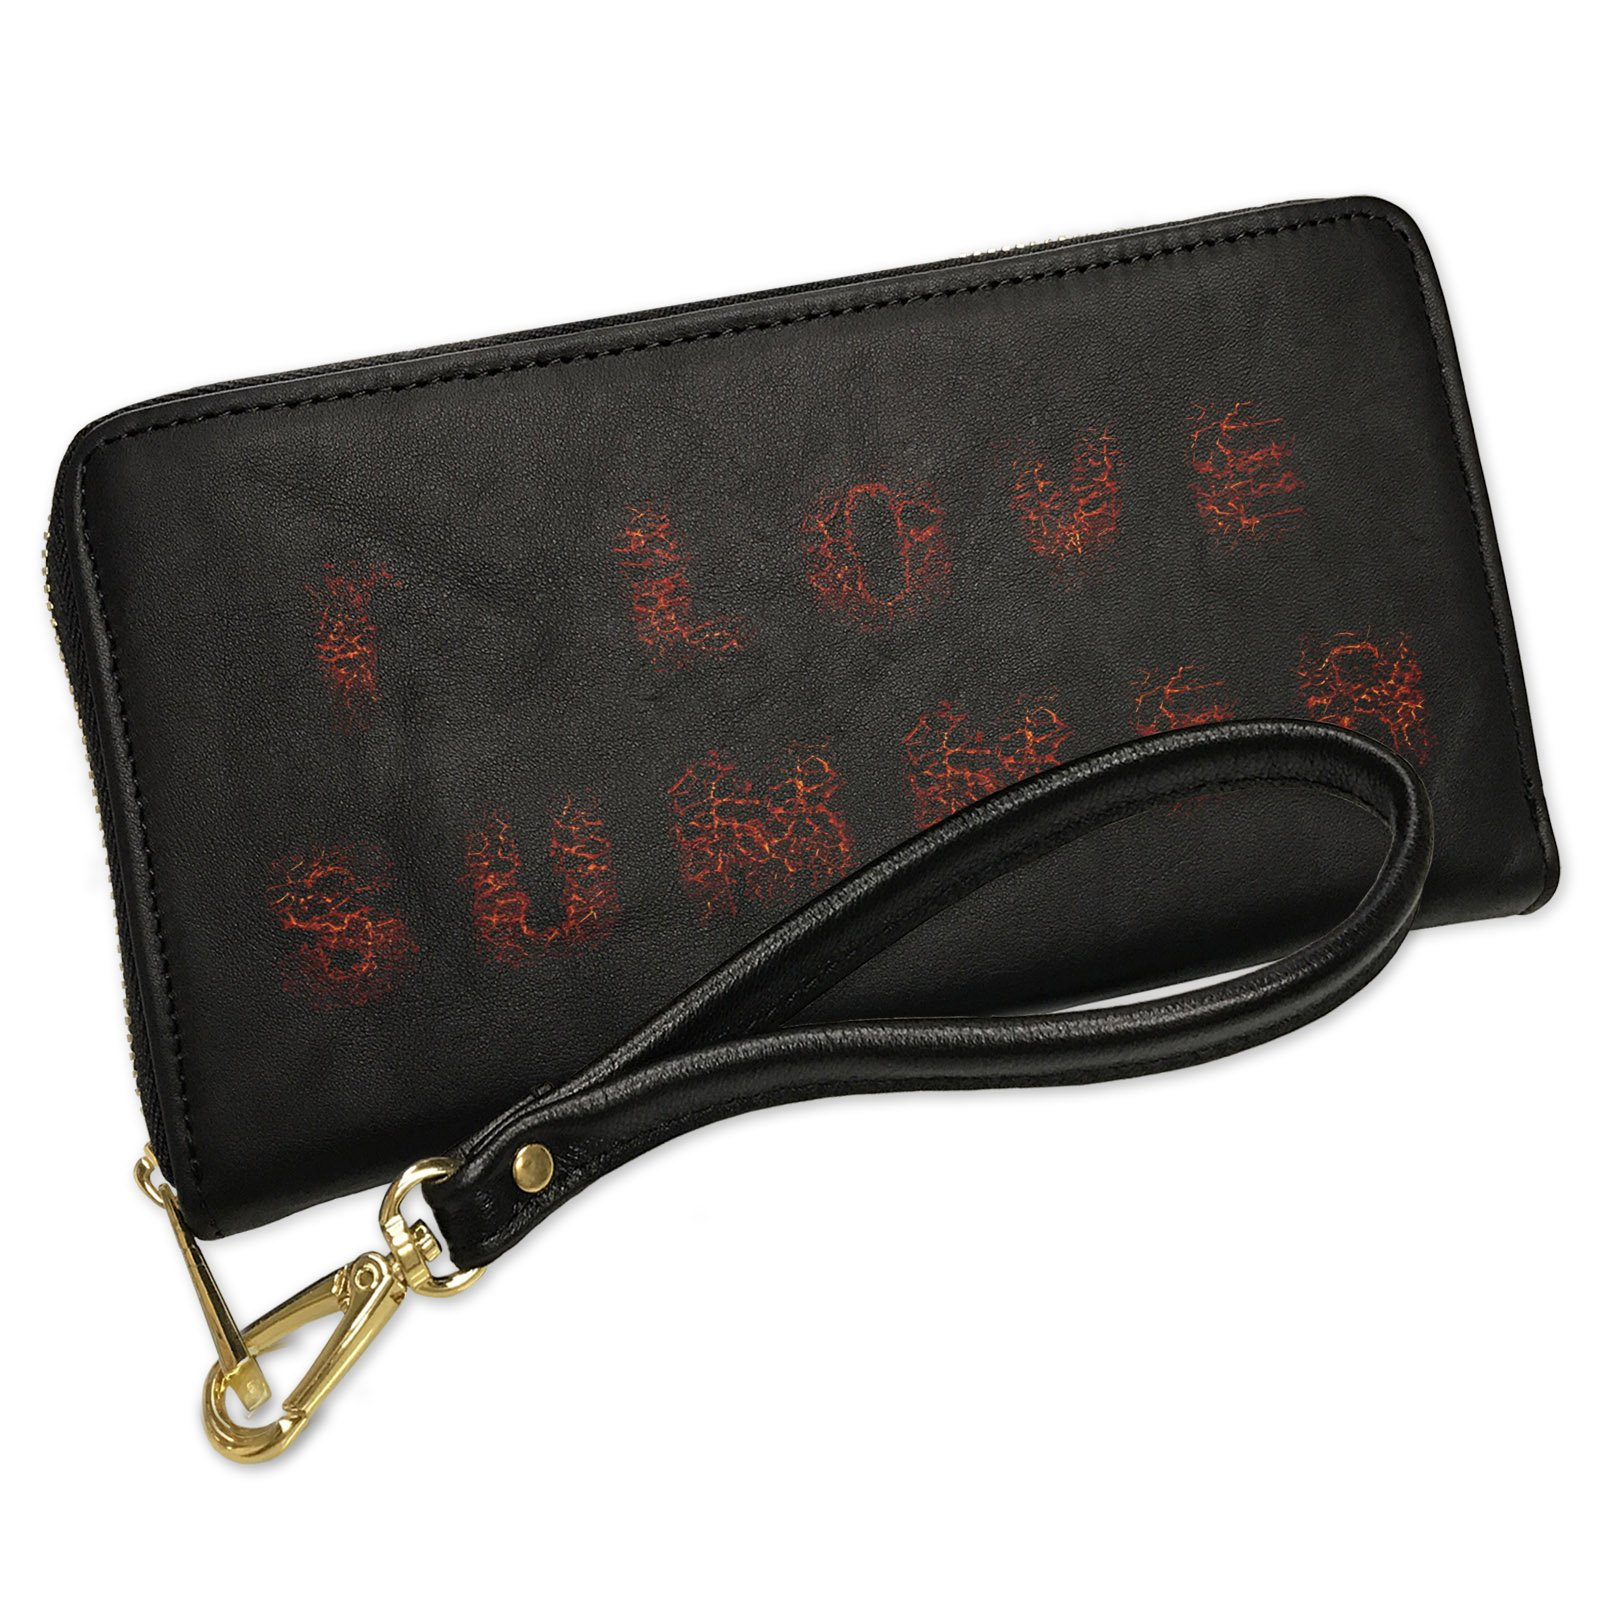 Wallet Clutch I Love Summer Hell Rock Lava Fire with Removable Wristlet Strap Neonblond